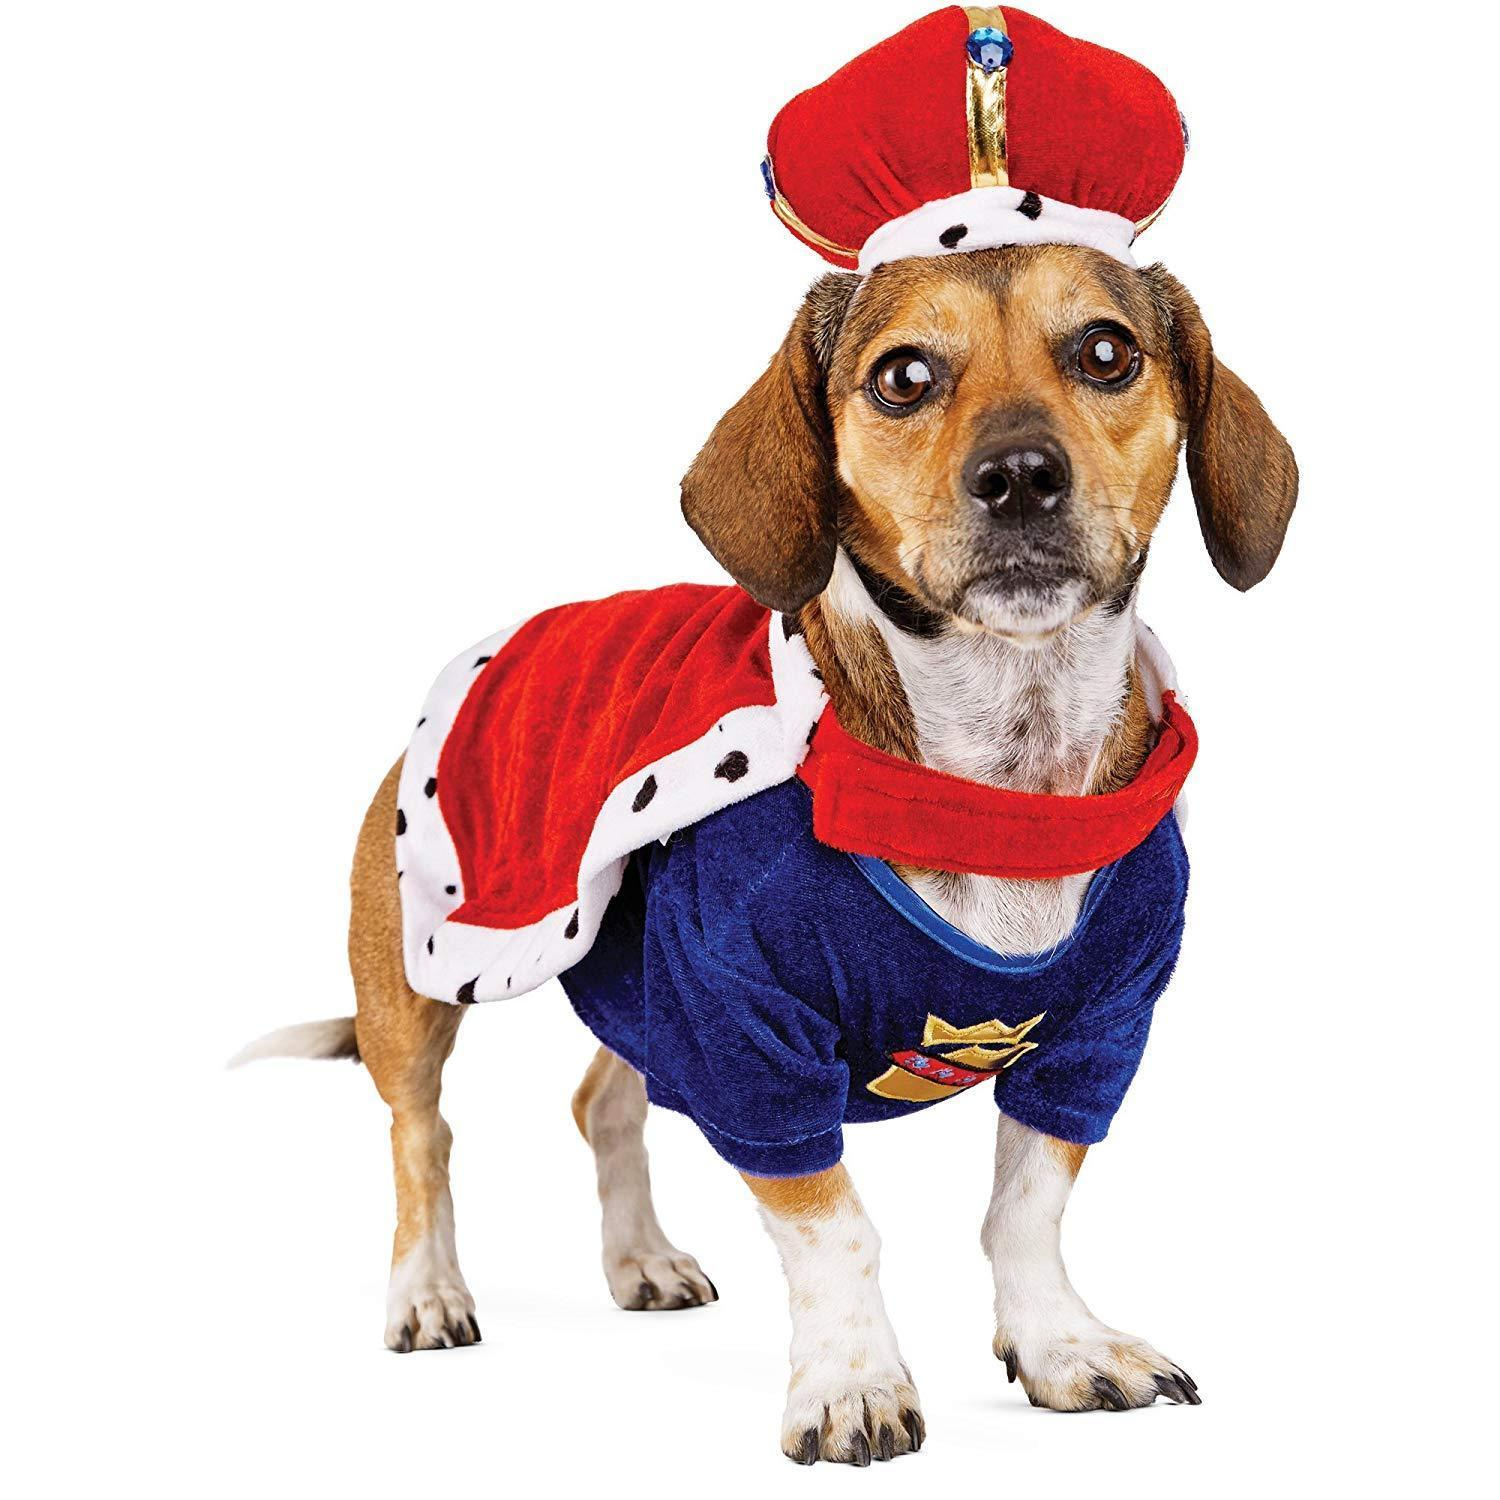 Bootique XL Majestic King Dog Pet Costume Halloween X-Large New 19-22""